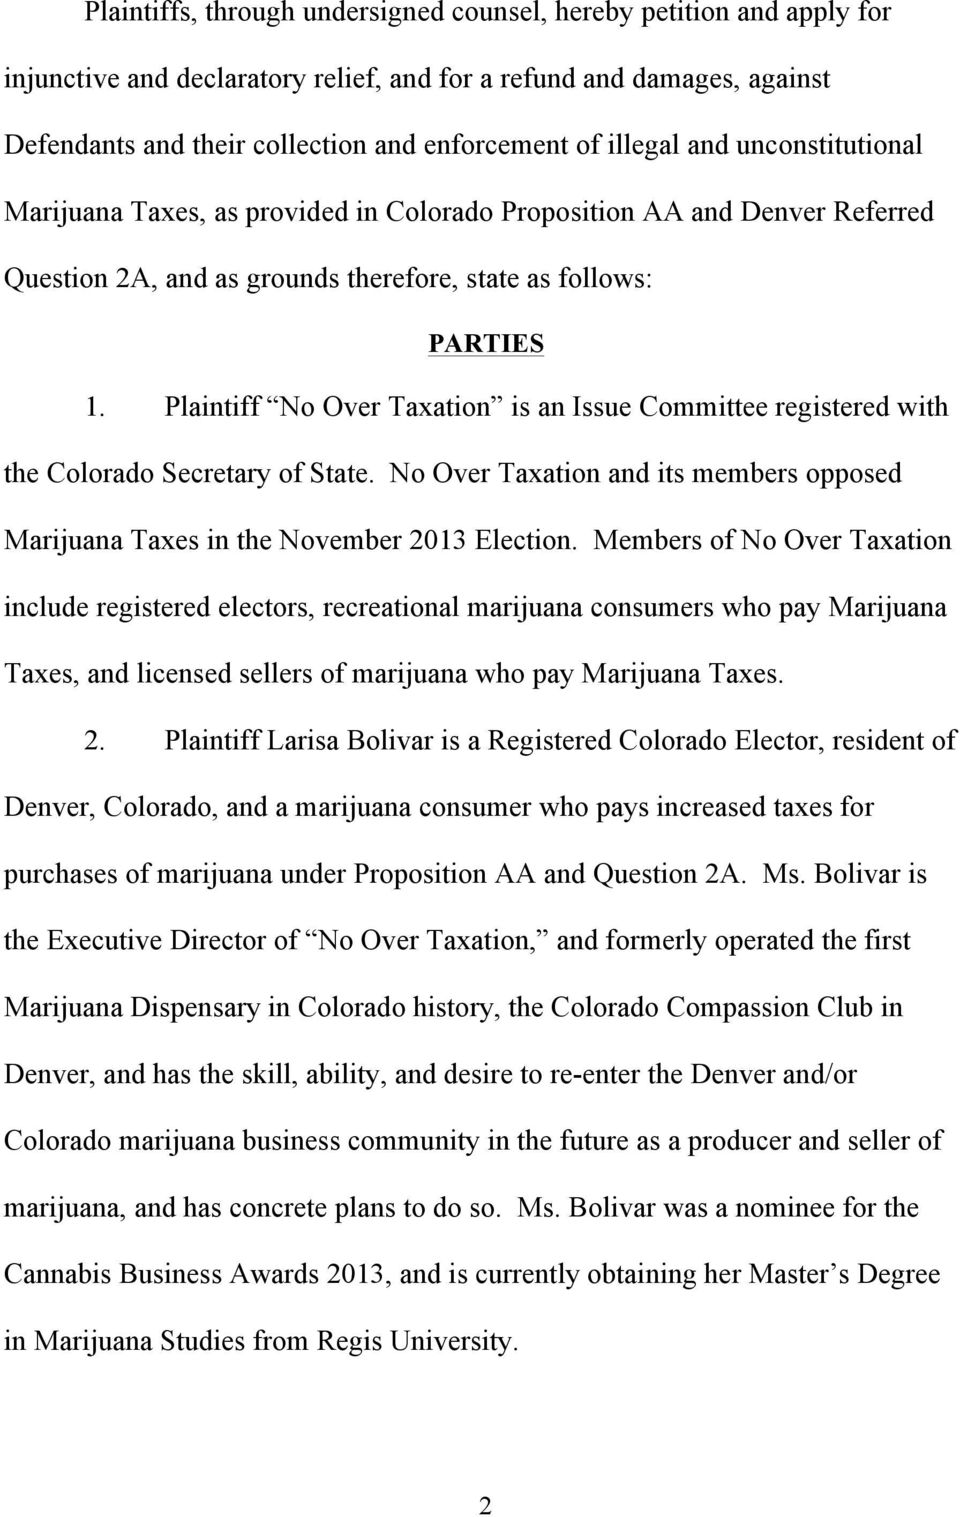 Plaintiff No Over Taxation is an Issue Committee registered with the Colorado Secretary of State. No Over Taxation and its members opposed Marijuana Taxes in the November 2013 Election.